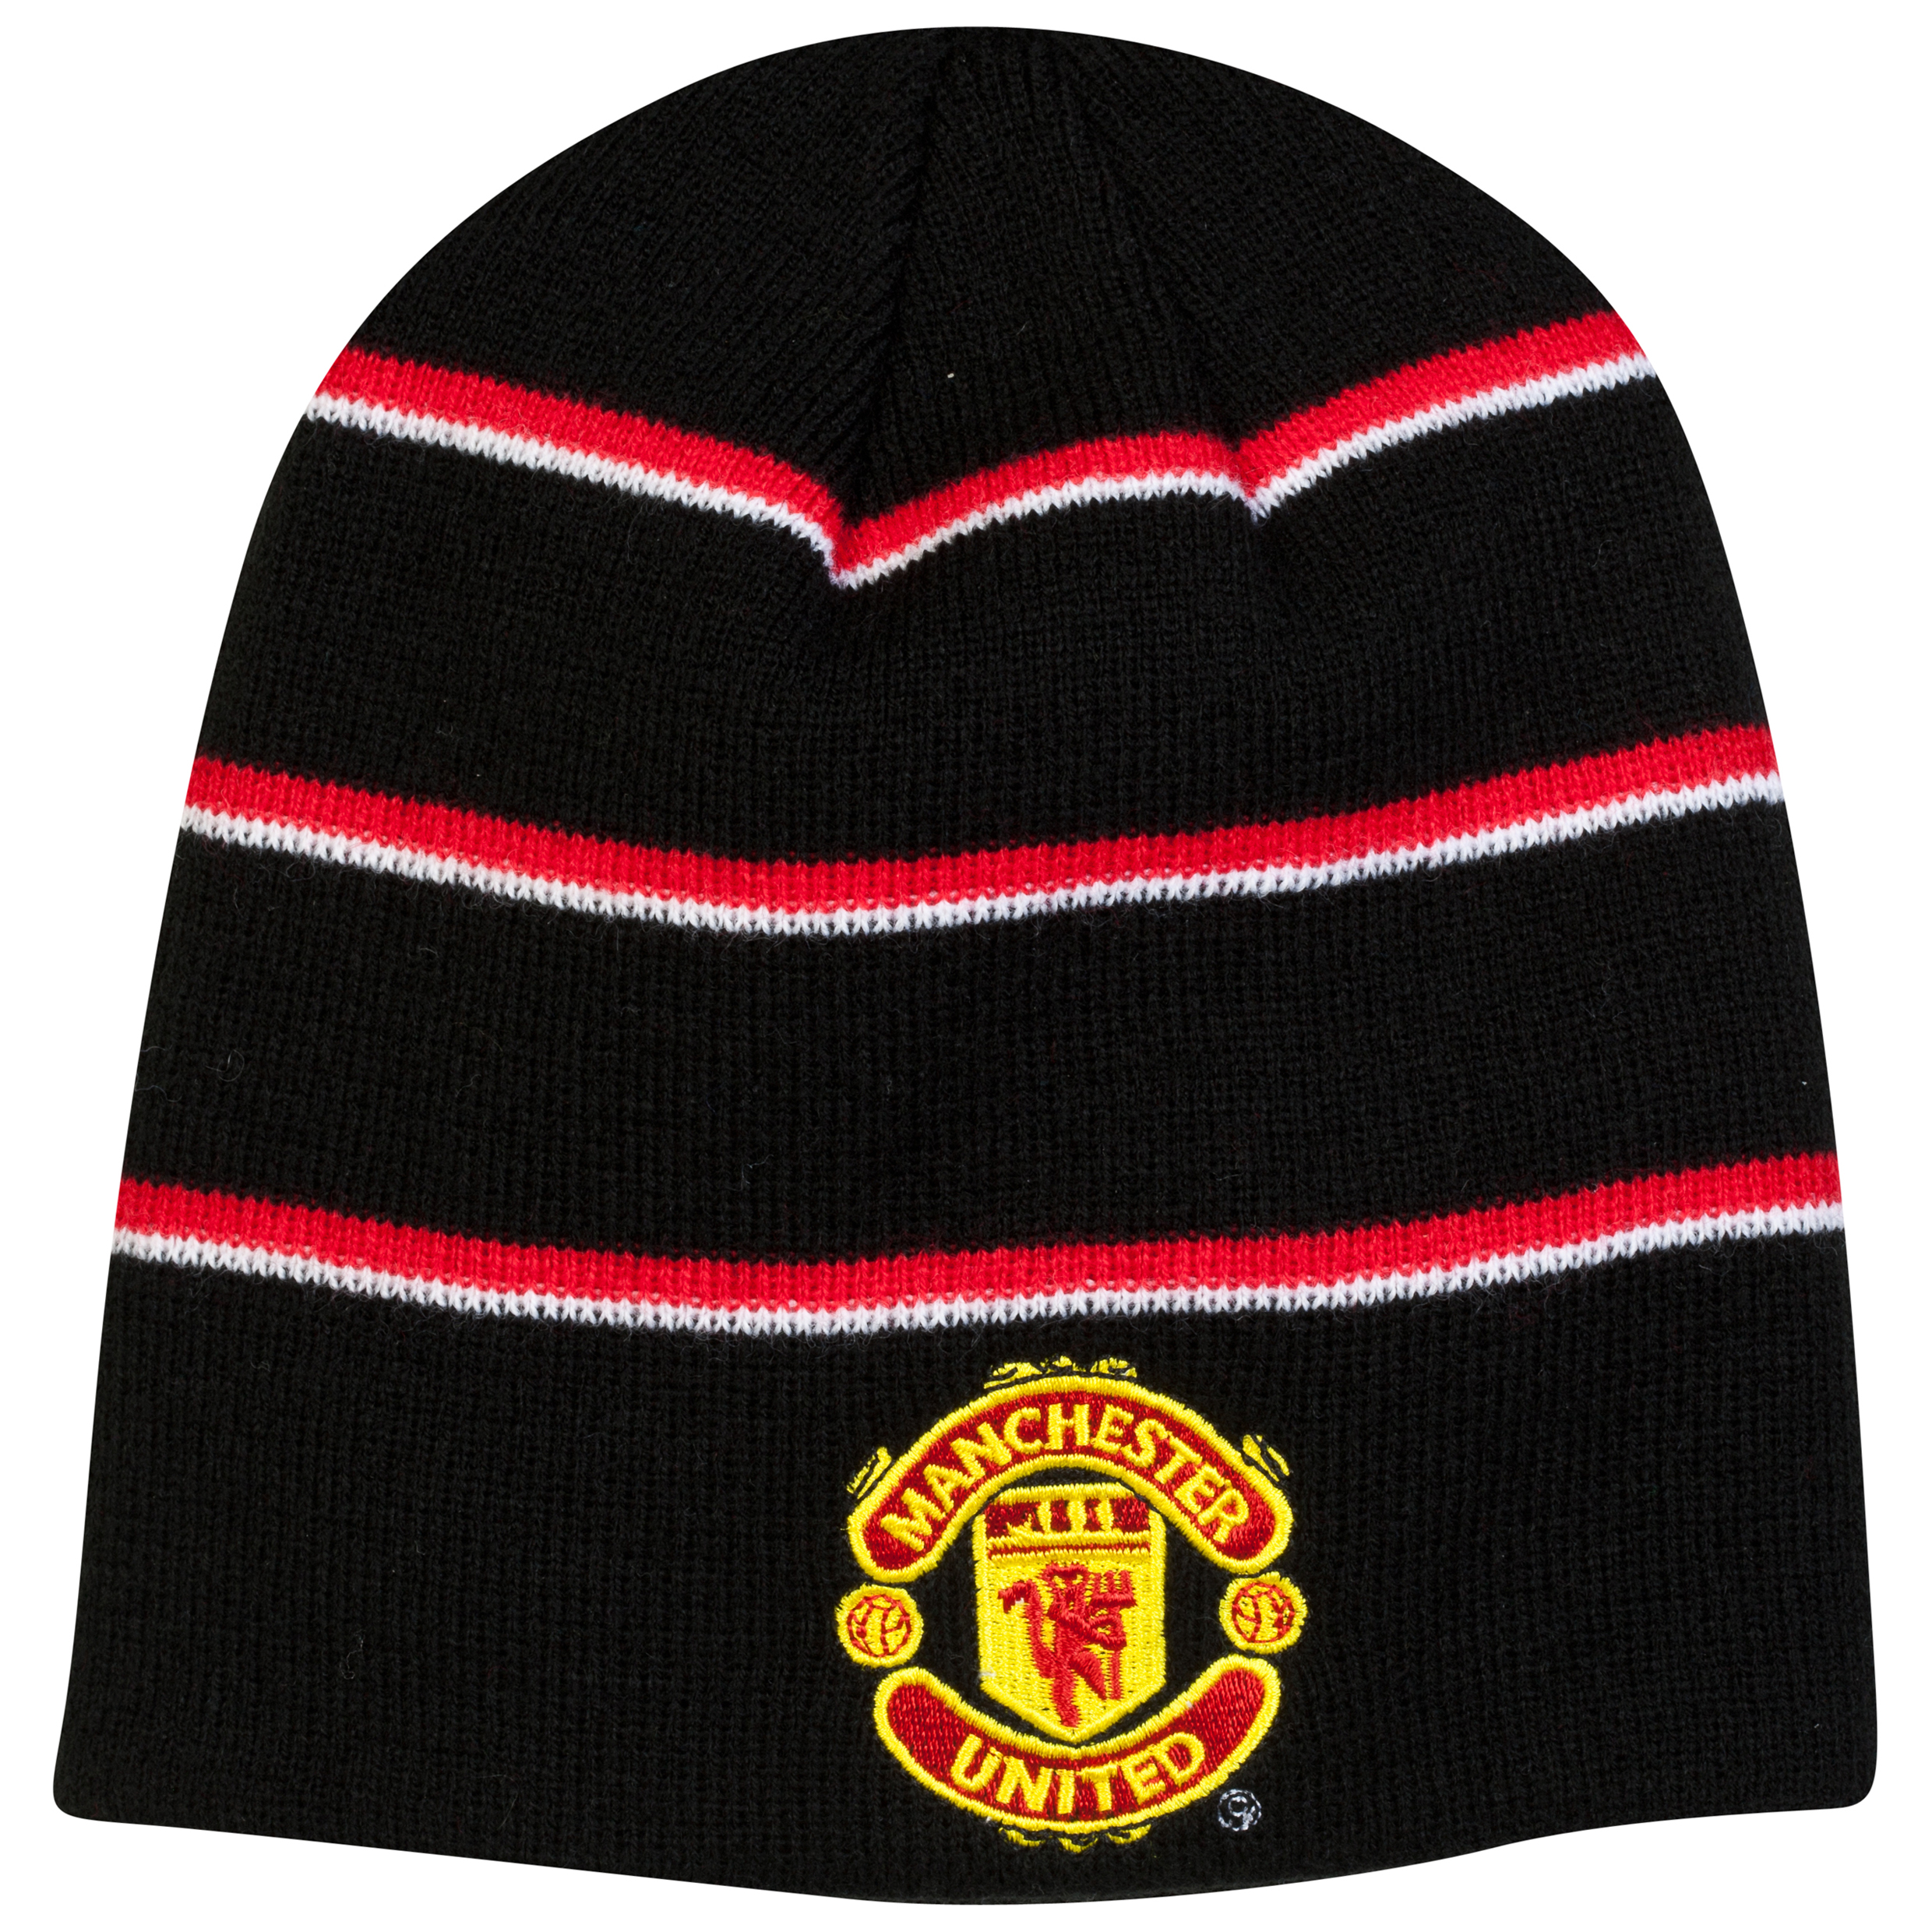 Manchester United Striped Crest Beanie Hat - Adult Black